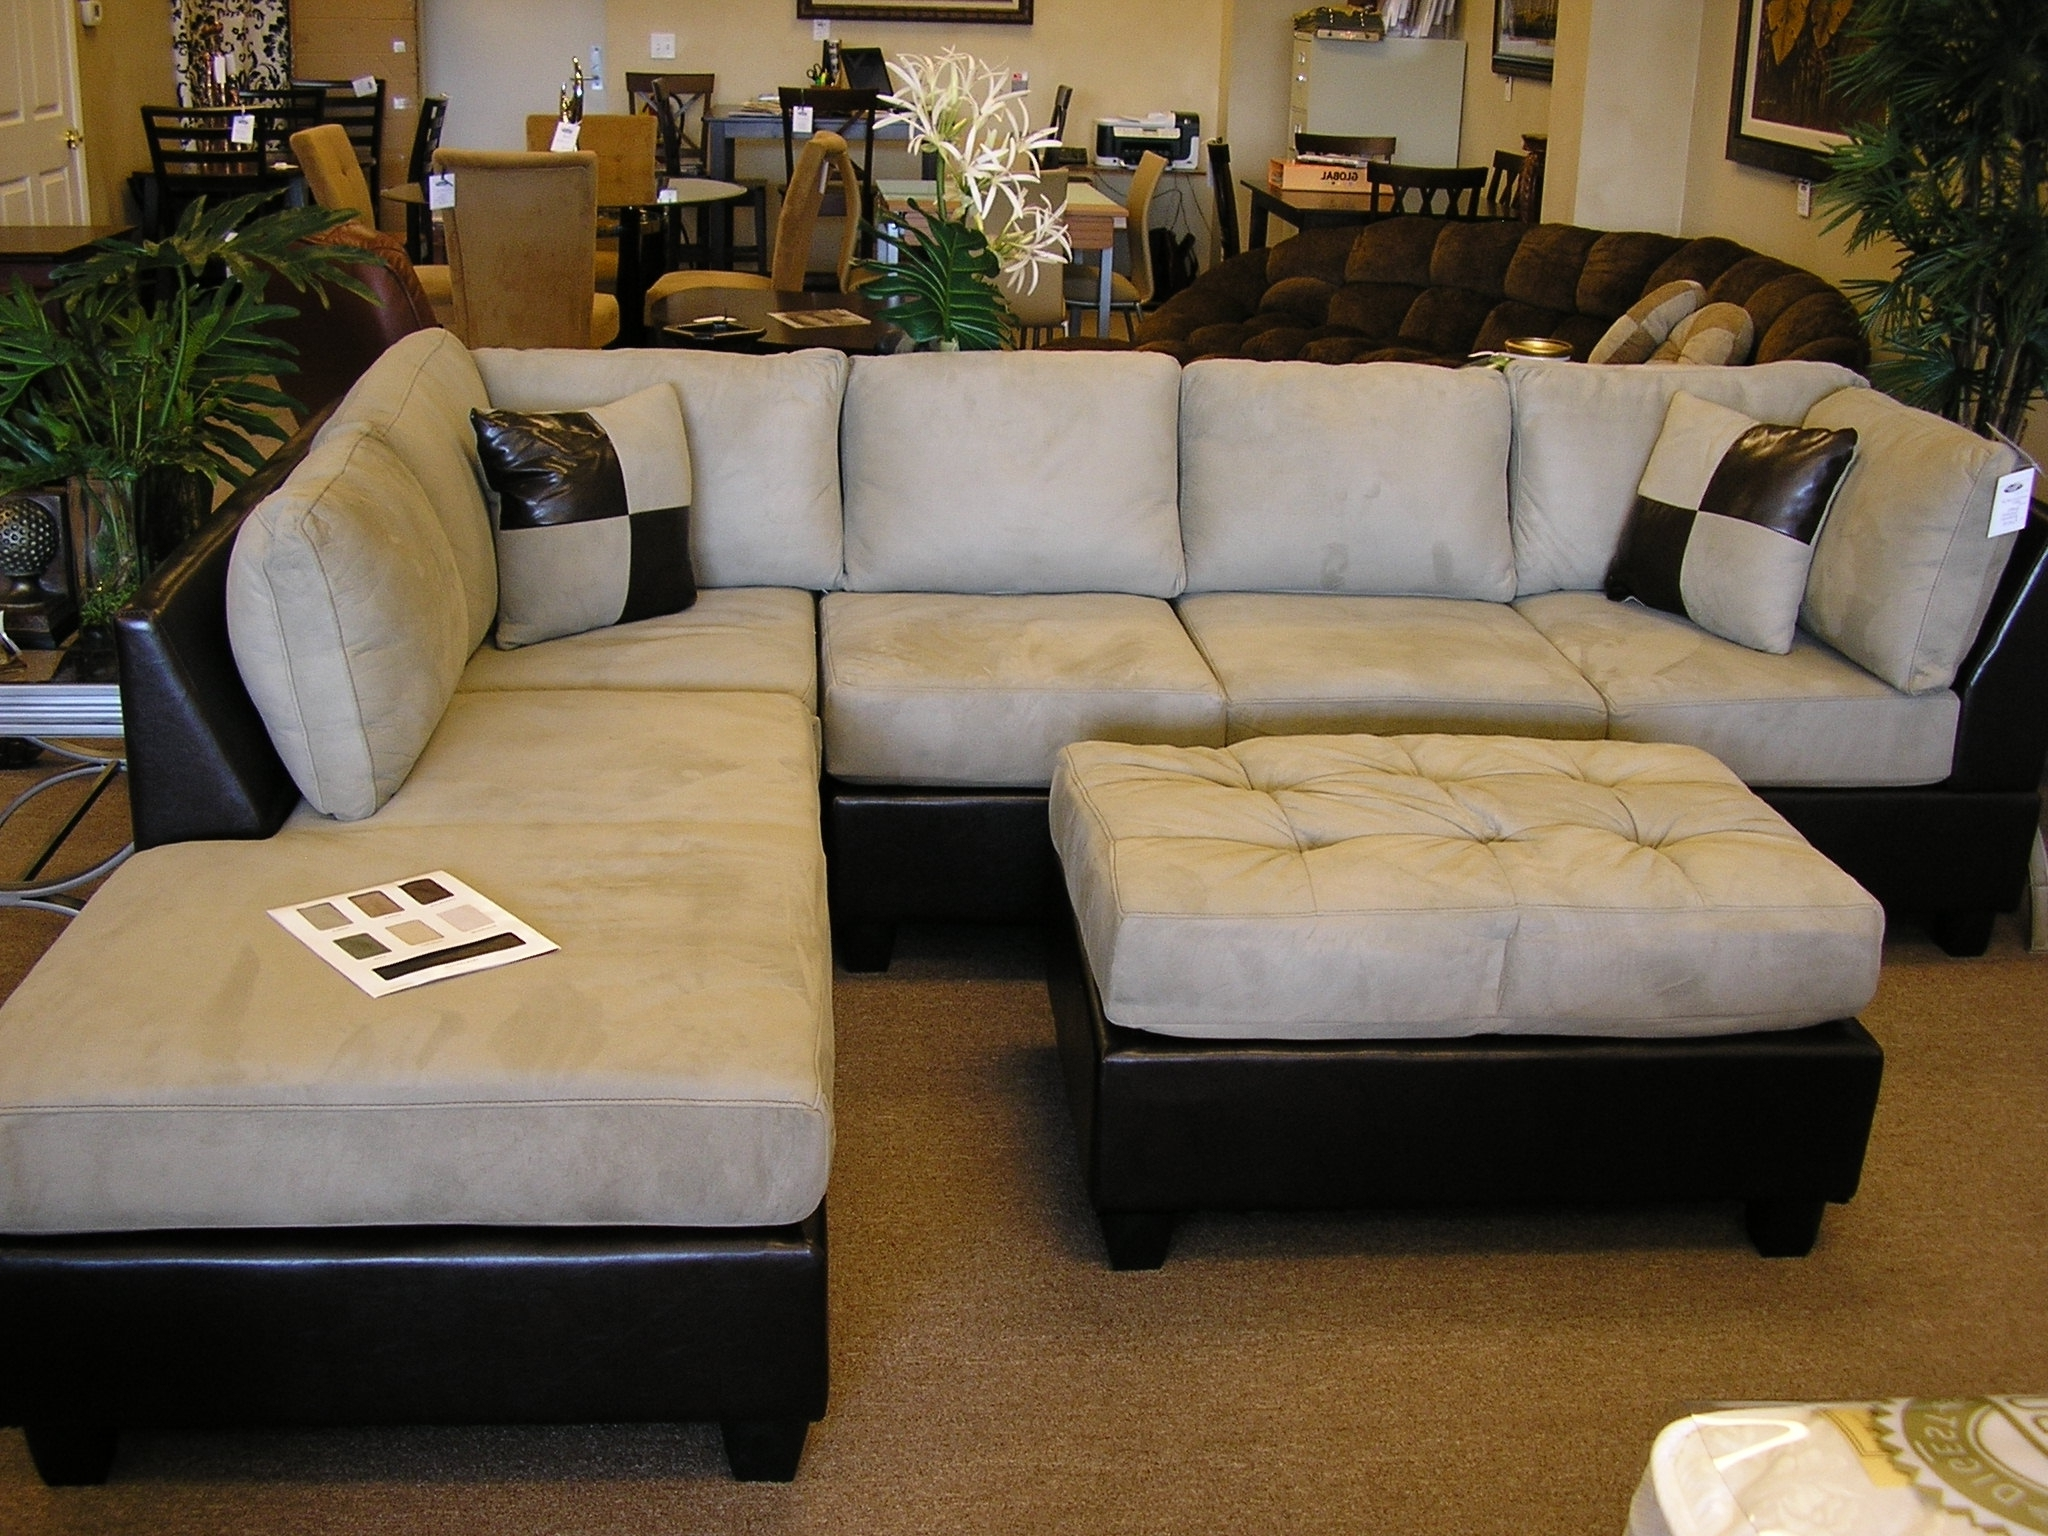 Newest Media Room Sofa Sectionals – Home Design Ideas And Pictures Inside Media Room Sectional Sofas (View 5 of 20)